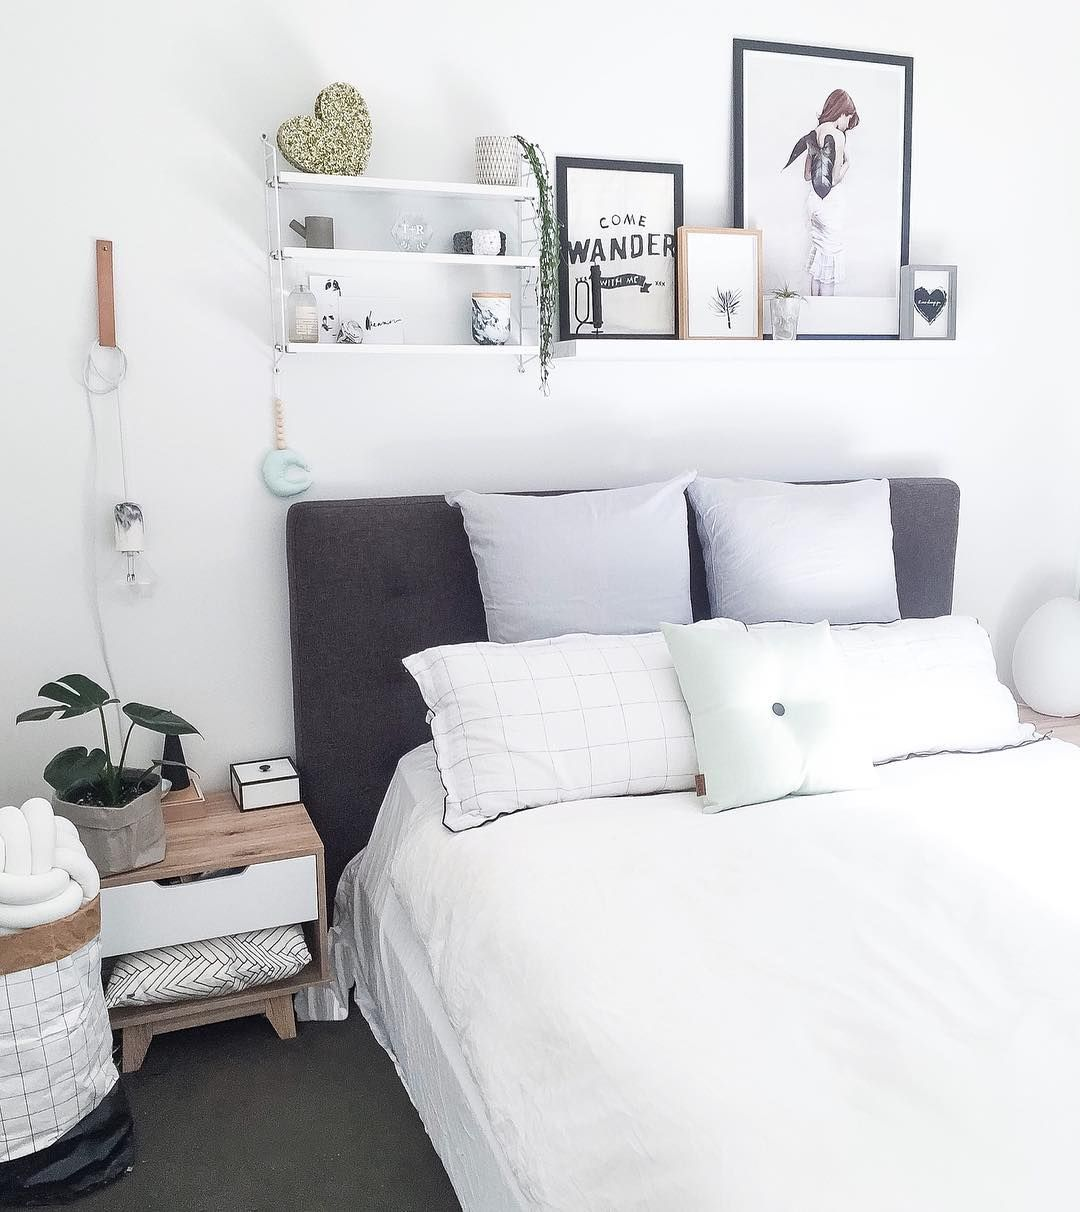 20 Times The Internet Showed Us That Shelves Above The Bed Are A